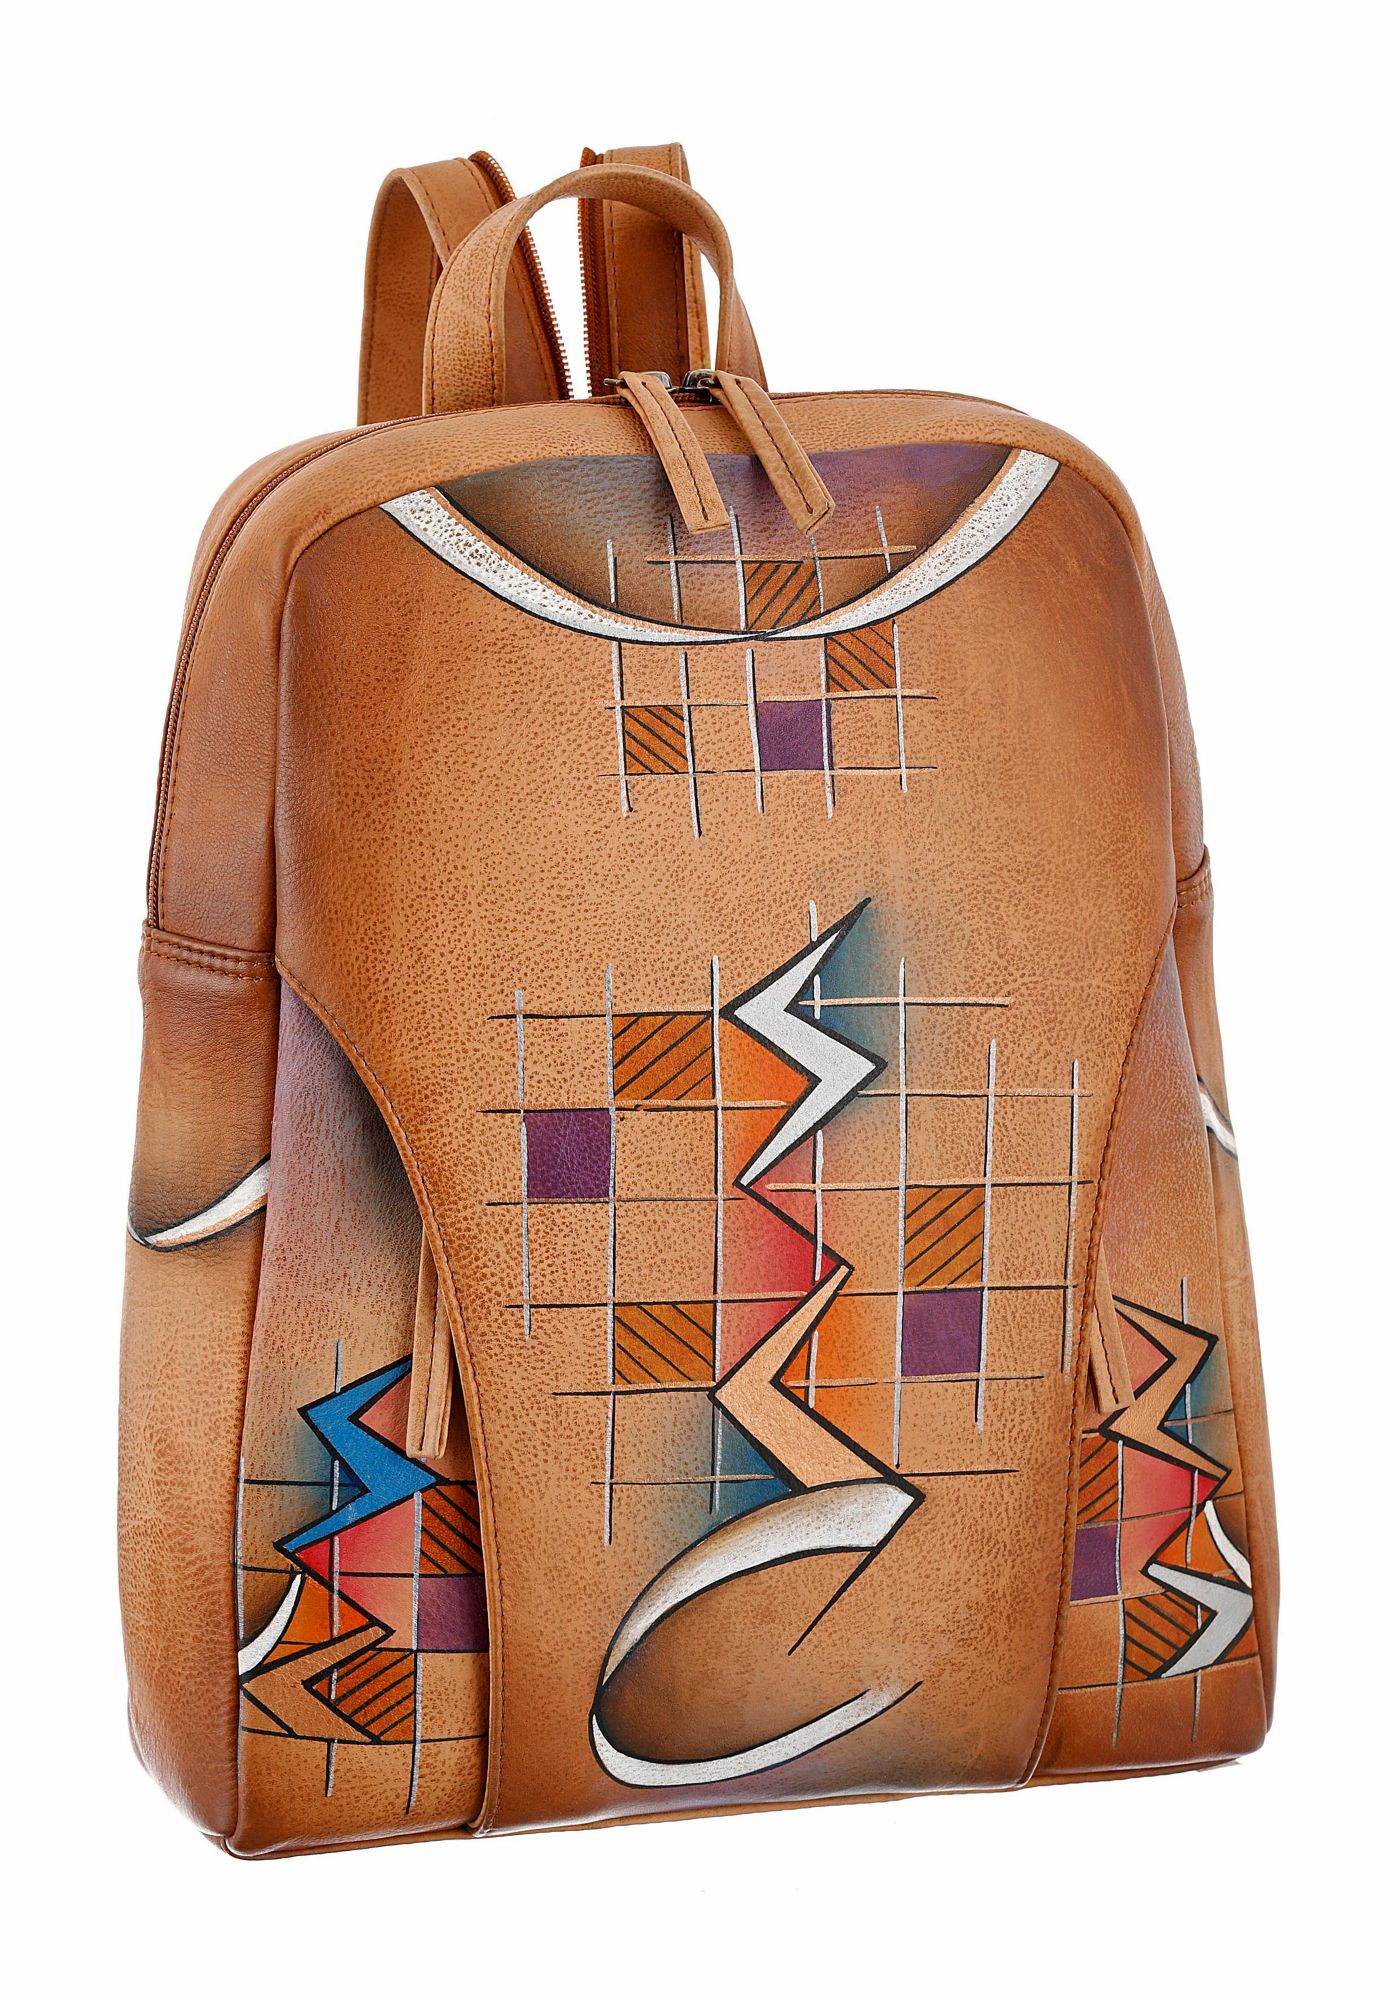 ART CRAFT Art & Craft Cityrucksack